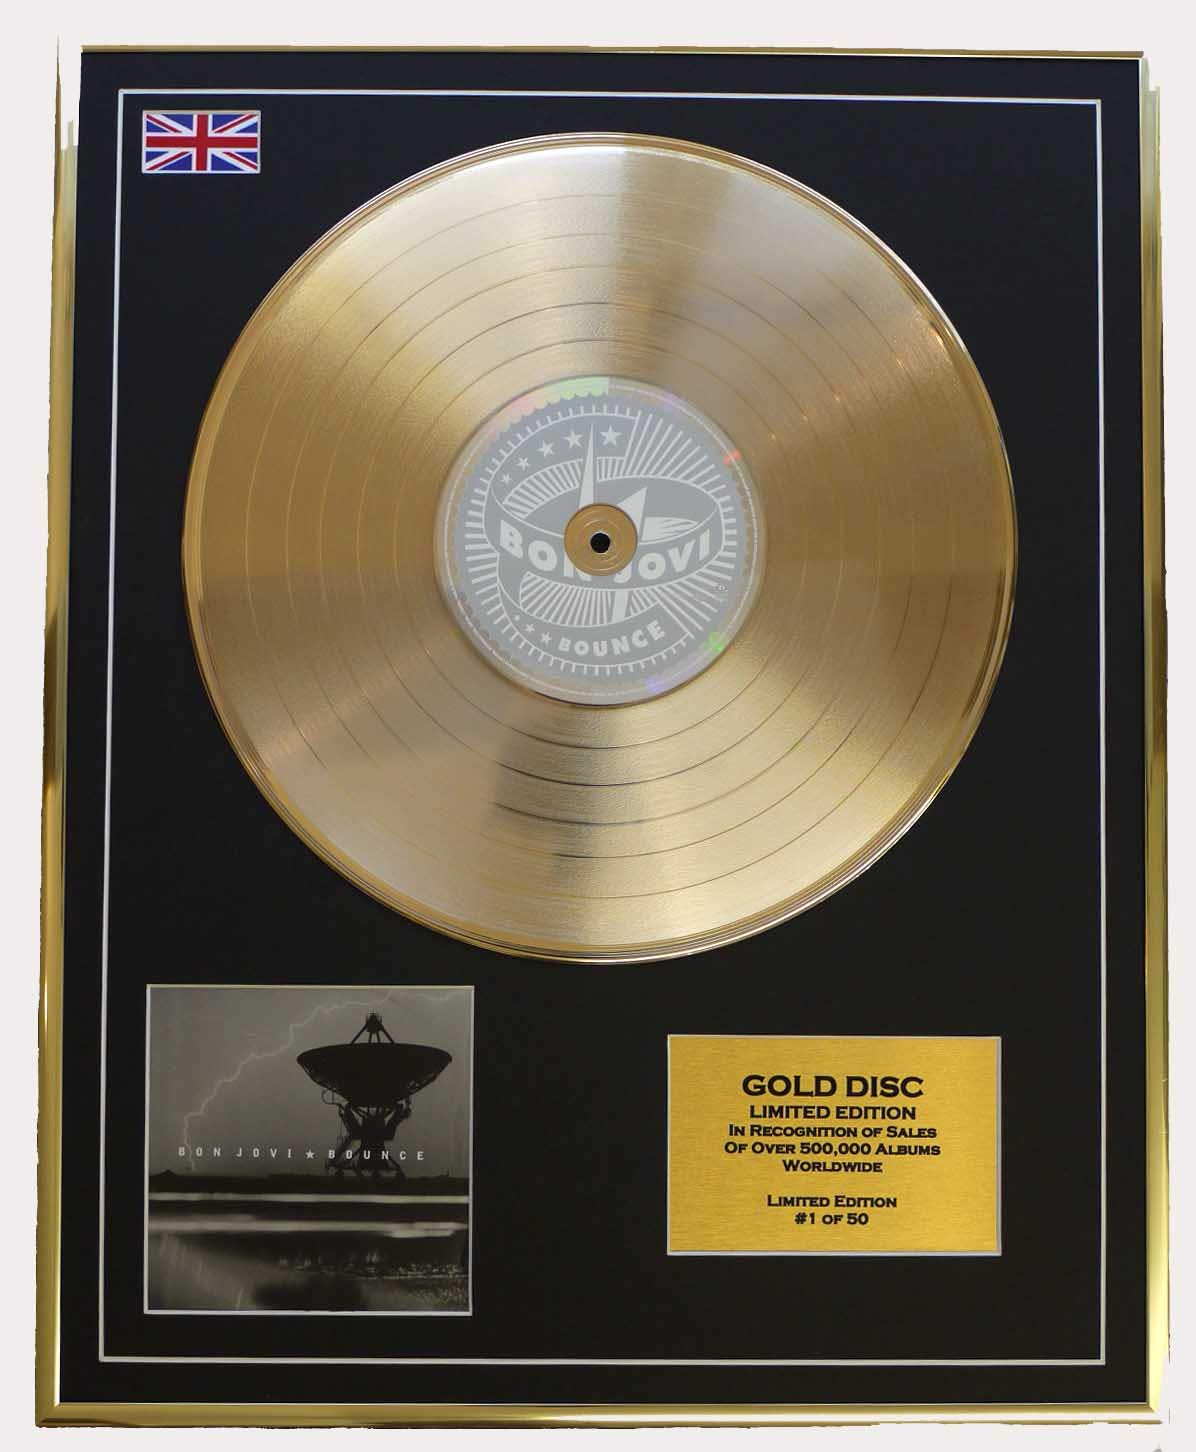 Bon Jovi Gold Disc Record Limitierte Edition Bounce